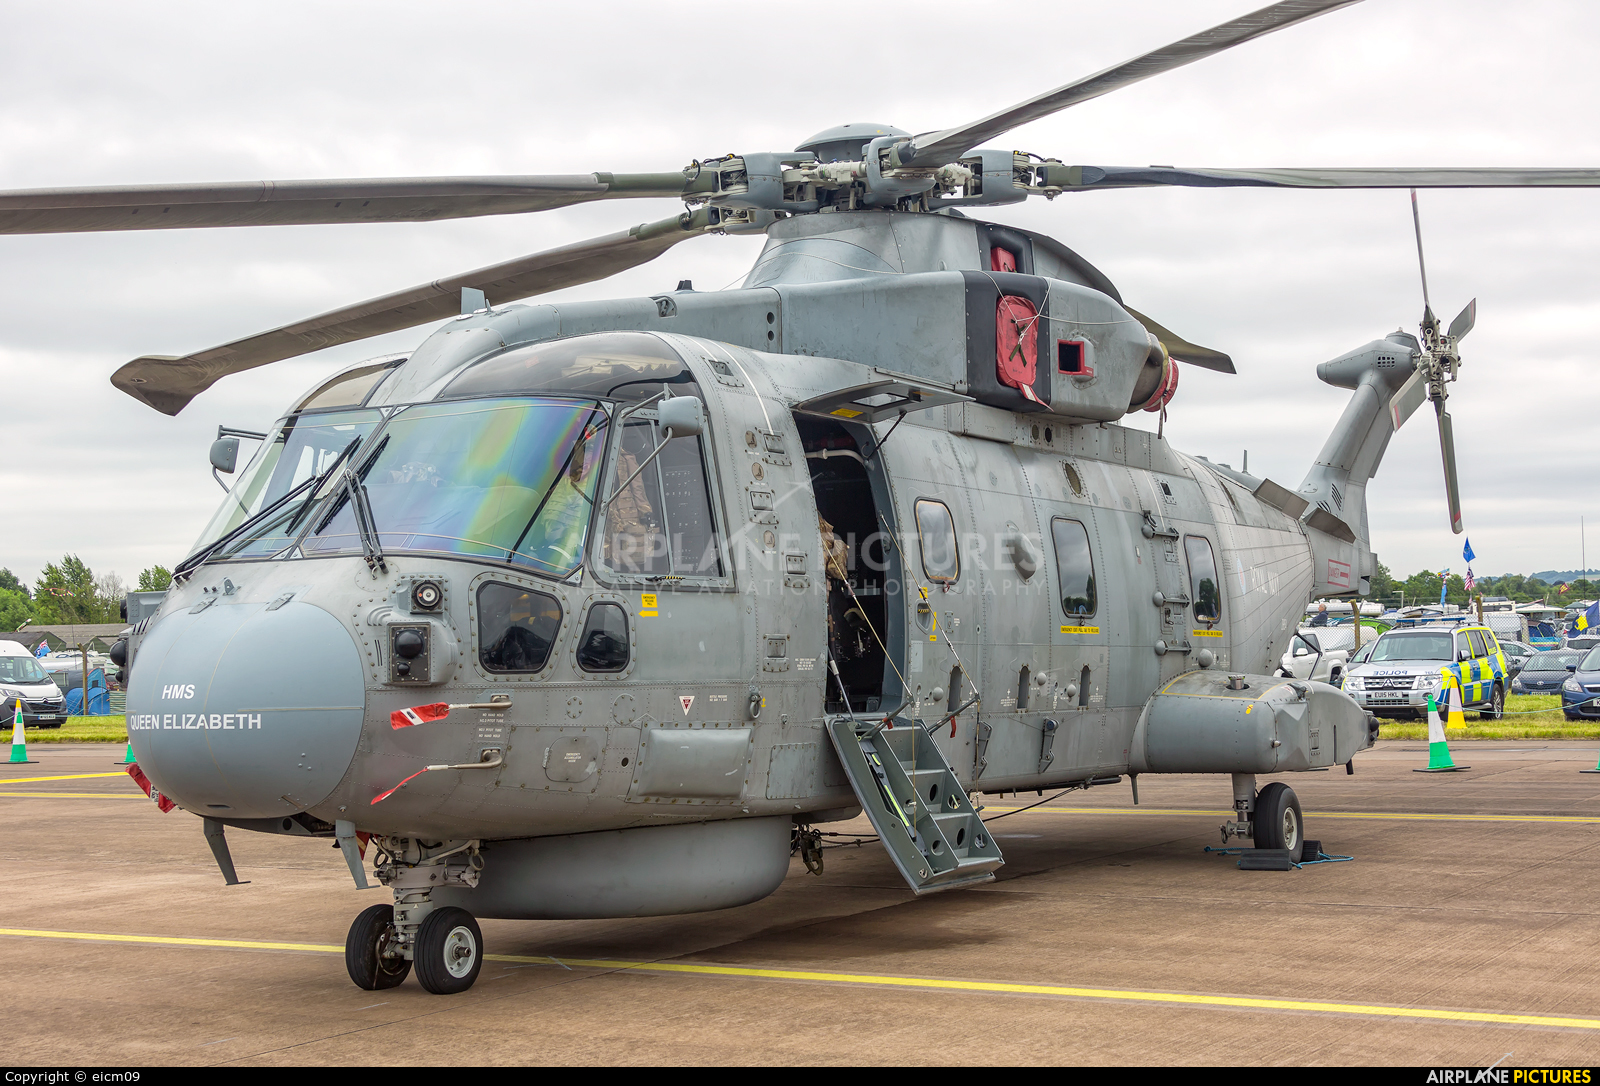 Royal Navy ZH854 aircraft at Fairford